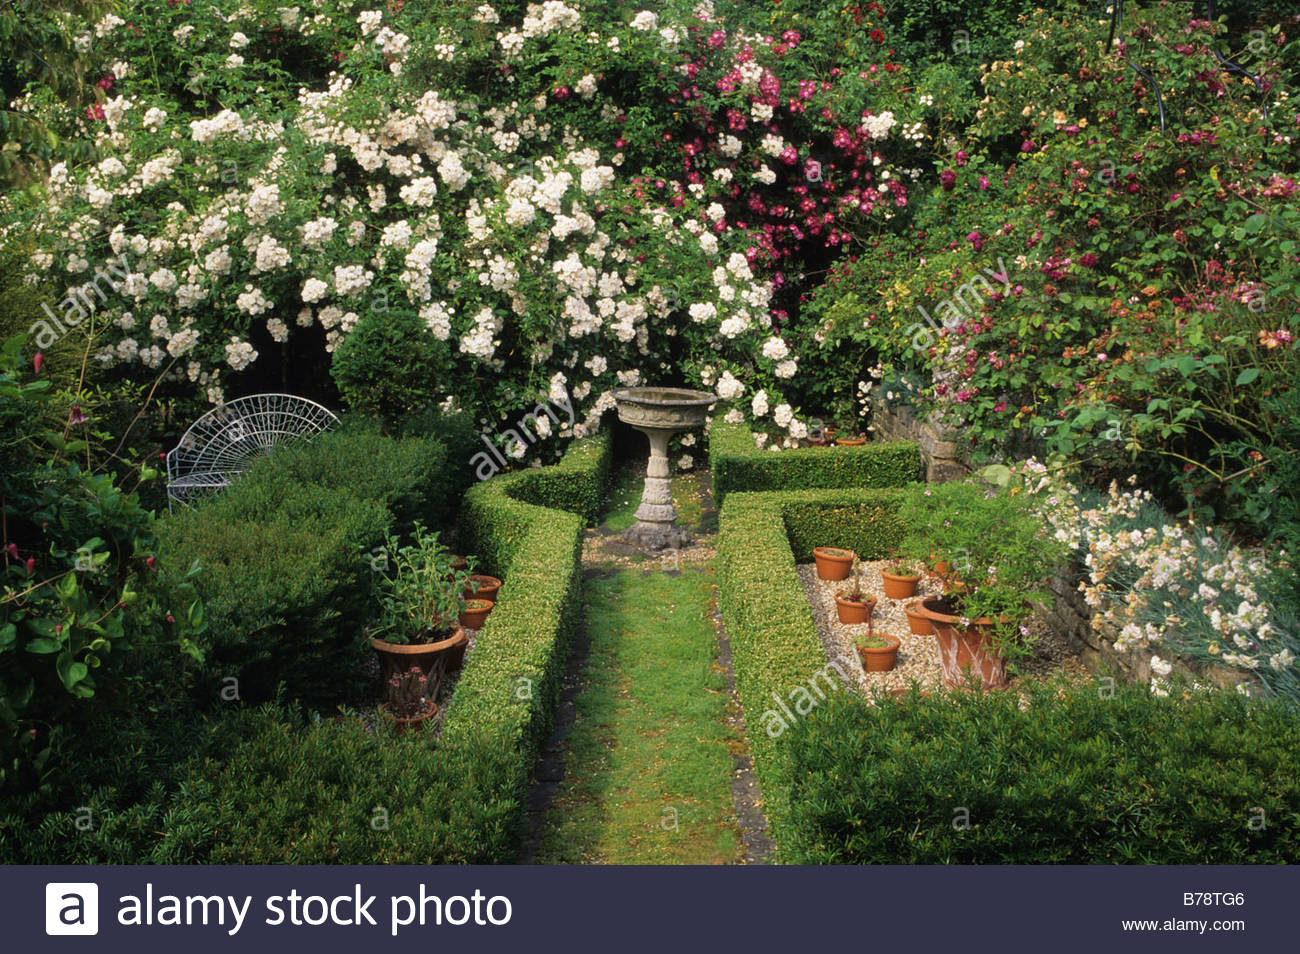 Alan Titchmarshs Garden Hampshire Scented Garden Climbing Roses With  Chamomile Path Boxwood Hedges And Bird Bath